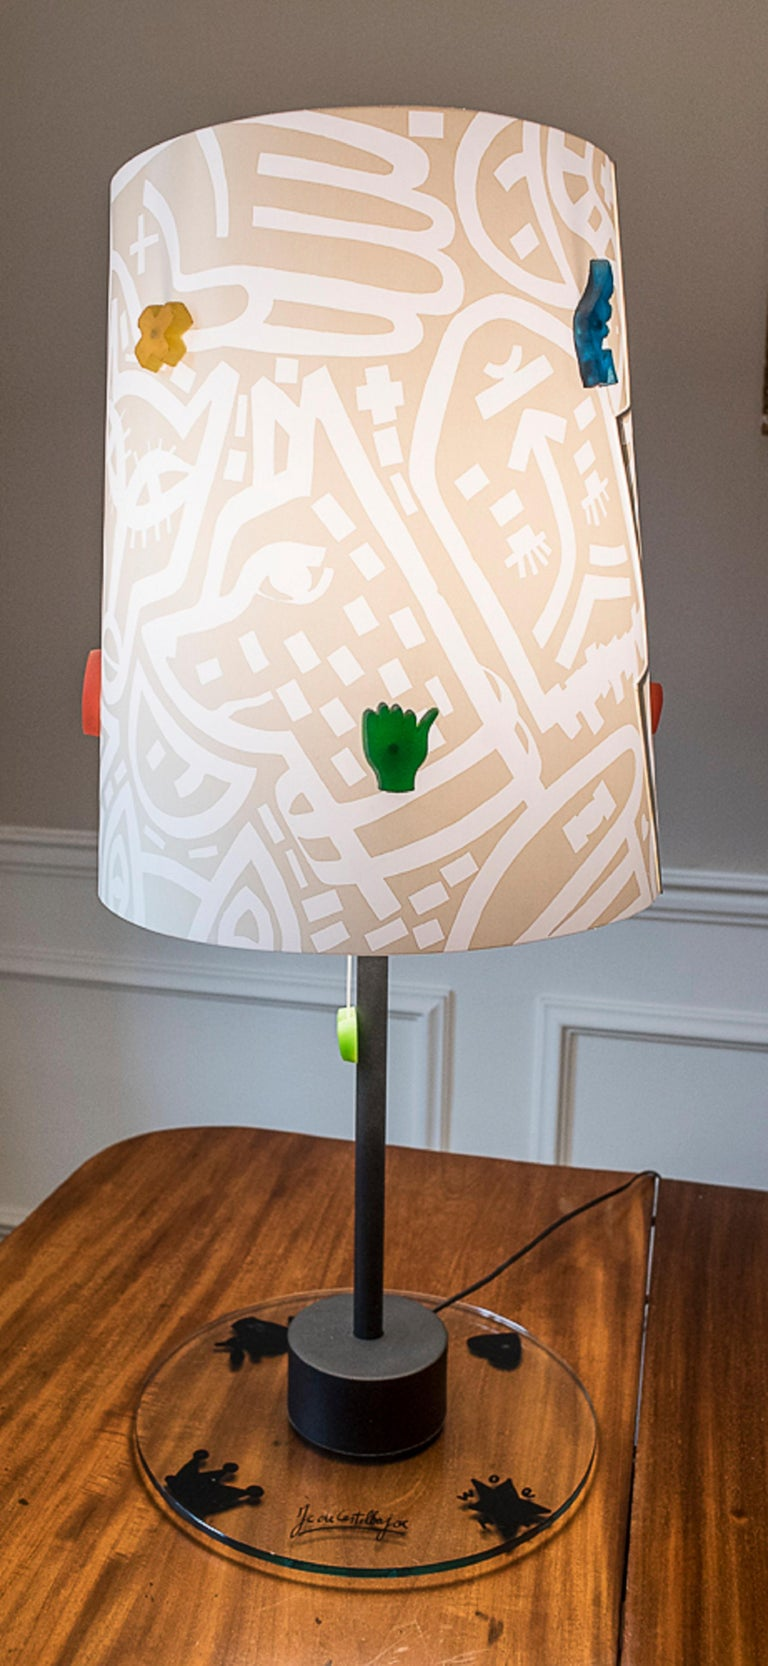 Crystal J.Charles Castelbajac Table Lamp with Diferentescolors and Patterns of Stars For Sale